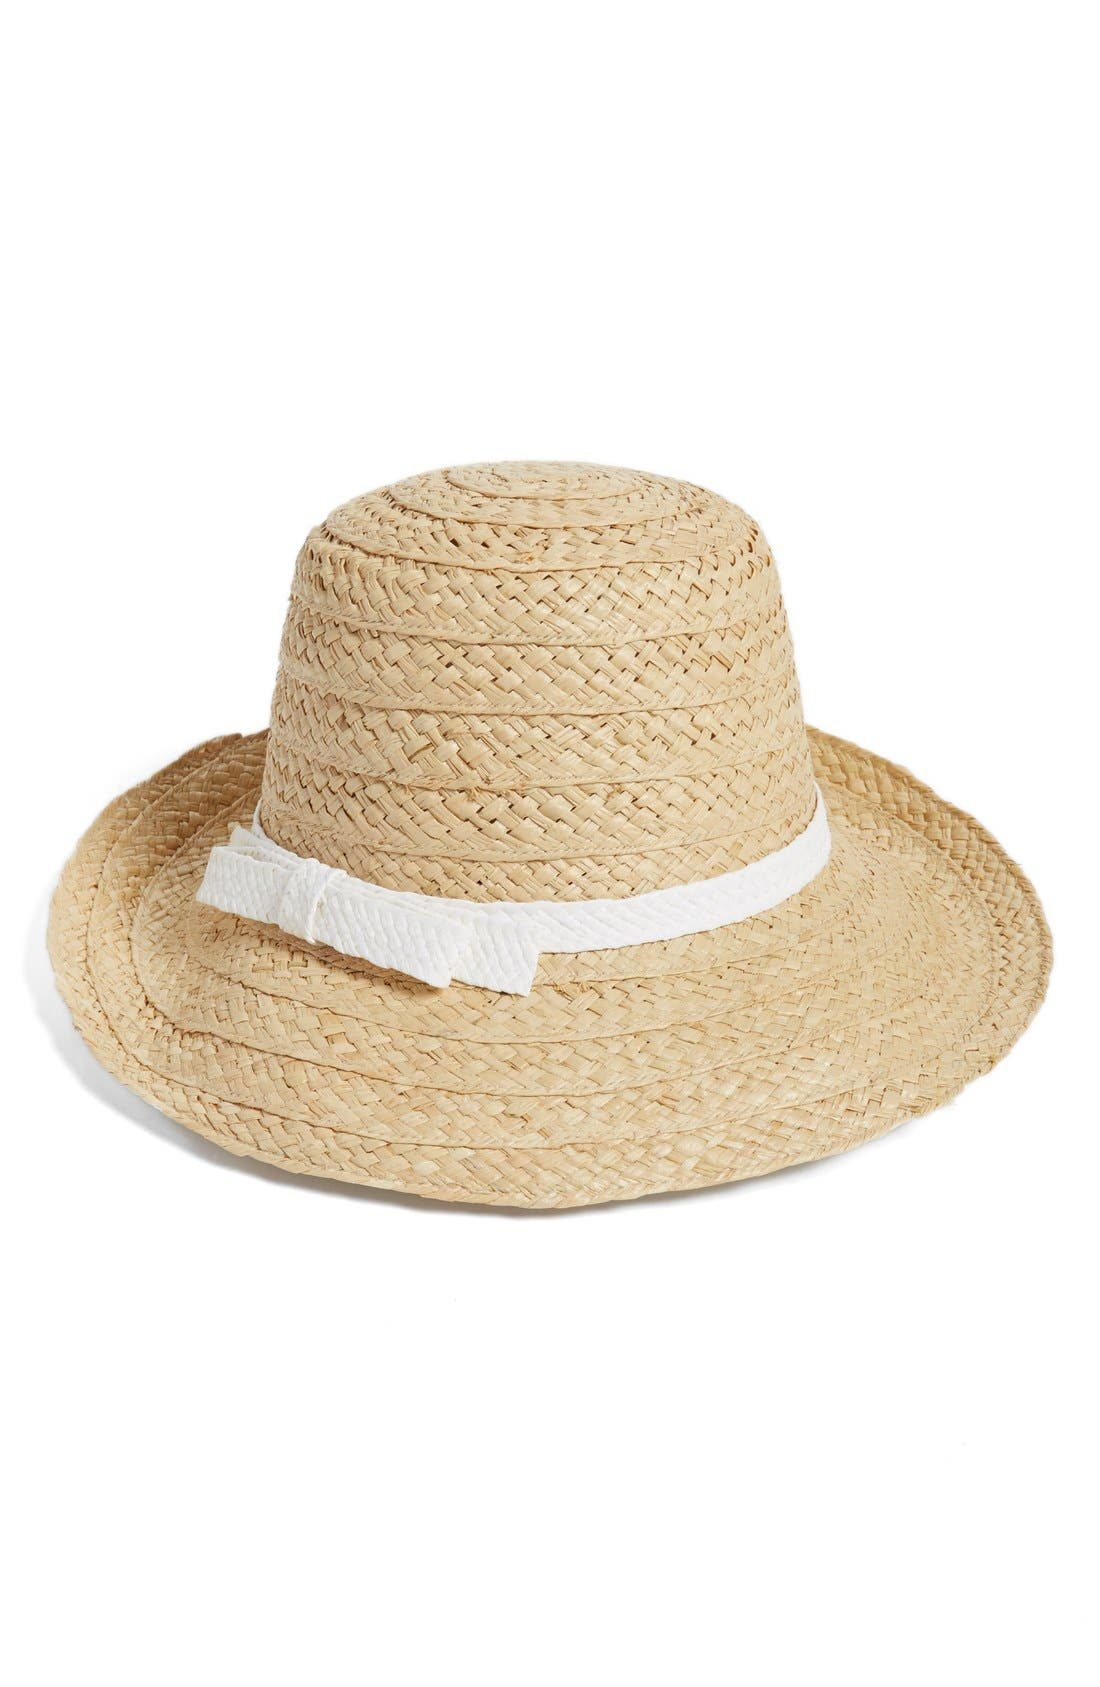 Alternate Image 1 Selected - kate spade new york asymmetrical sun hat